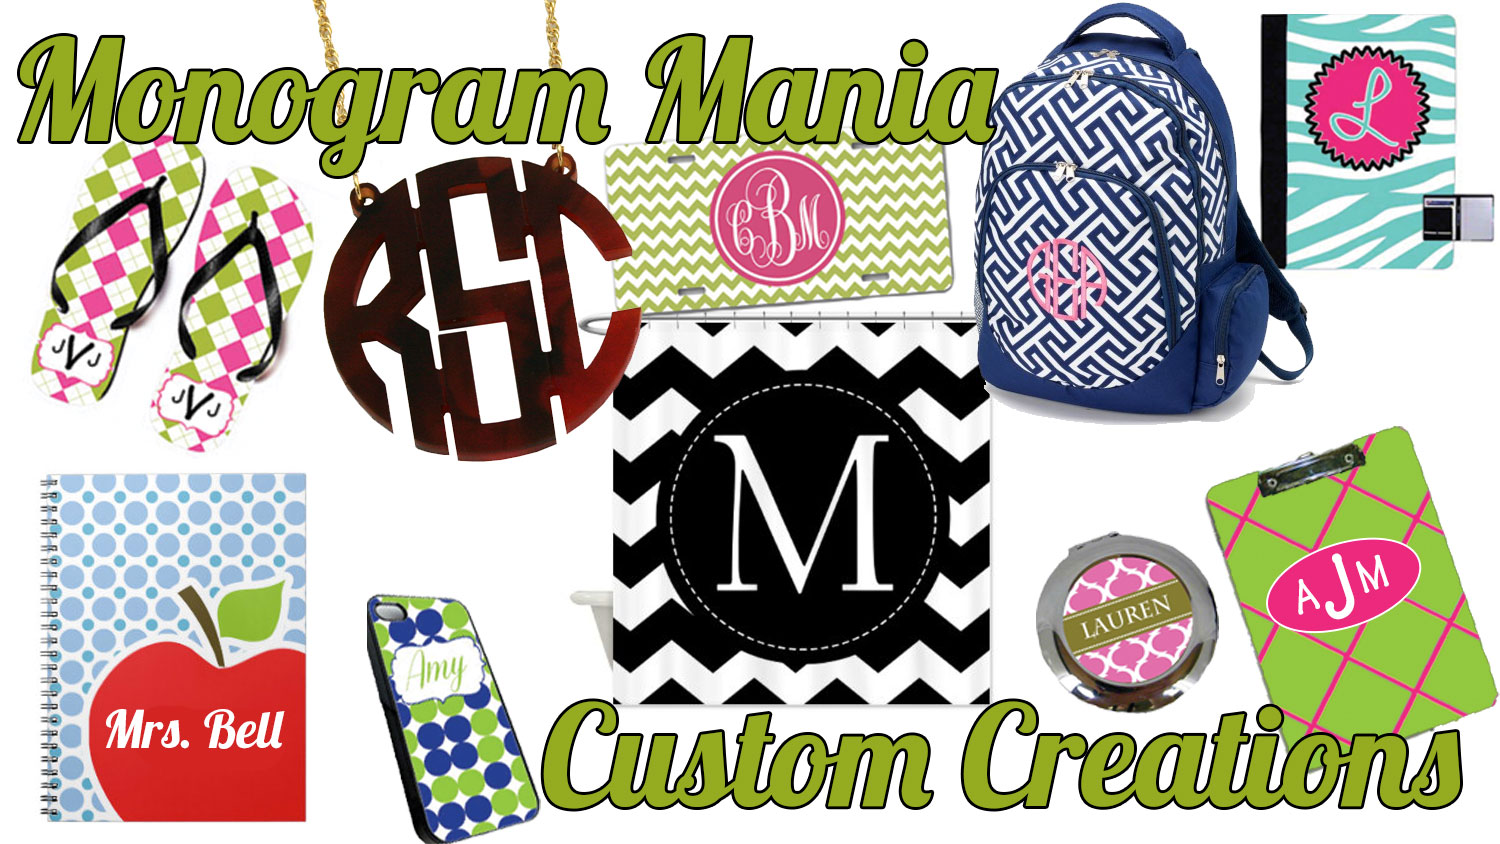 monogram-mania-top-graphic.jpg